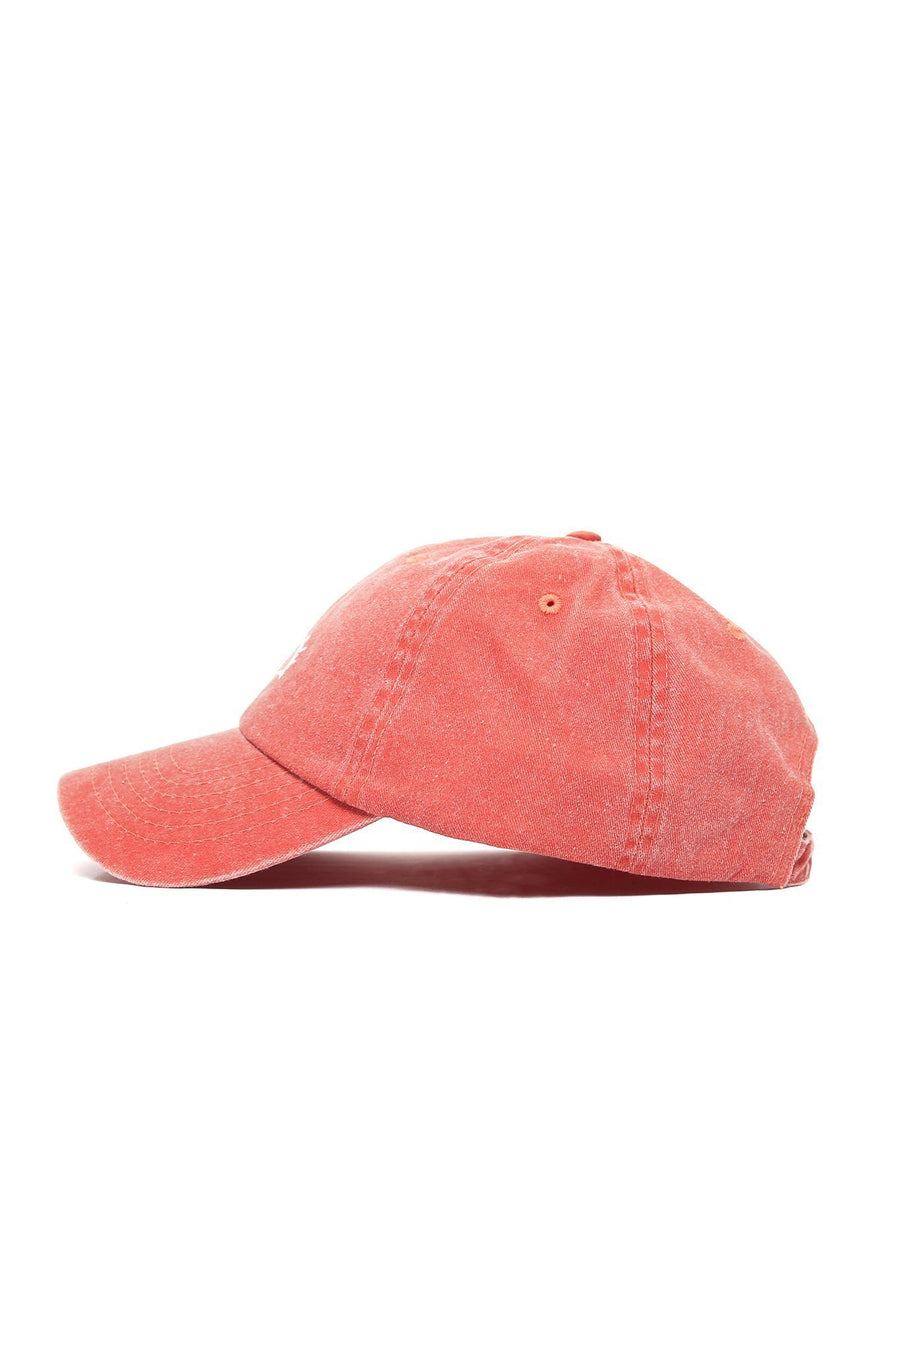 Sun Wave Solid White Logo Cap - Burnt Orange - Shore